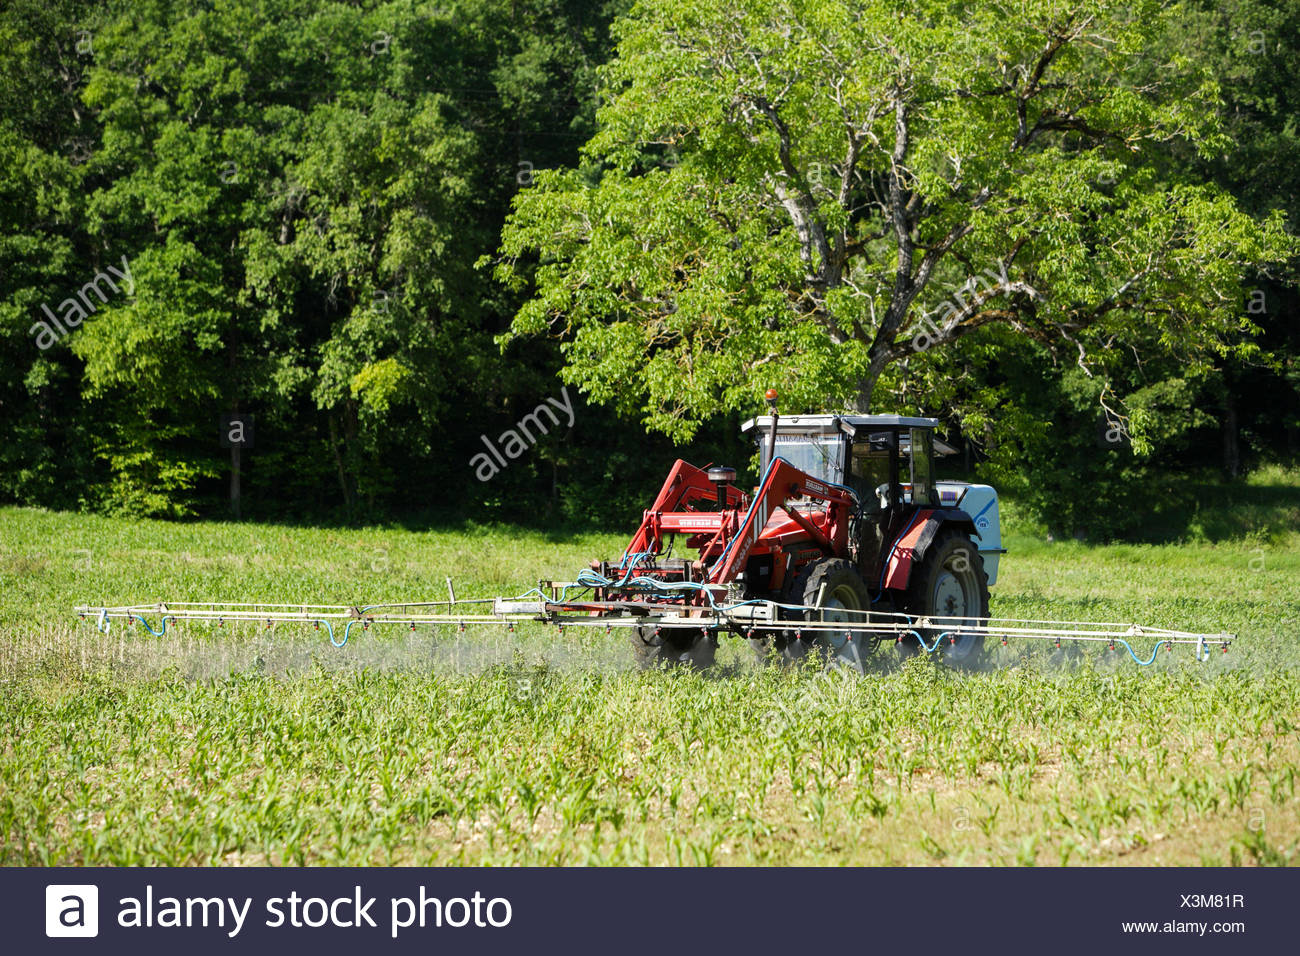 Sustainable Farmer Farmer Spraying Chemicals On Corn Fields This Farmer Uses